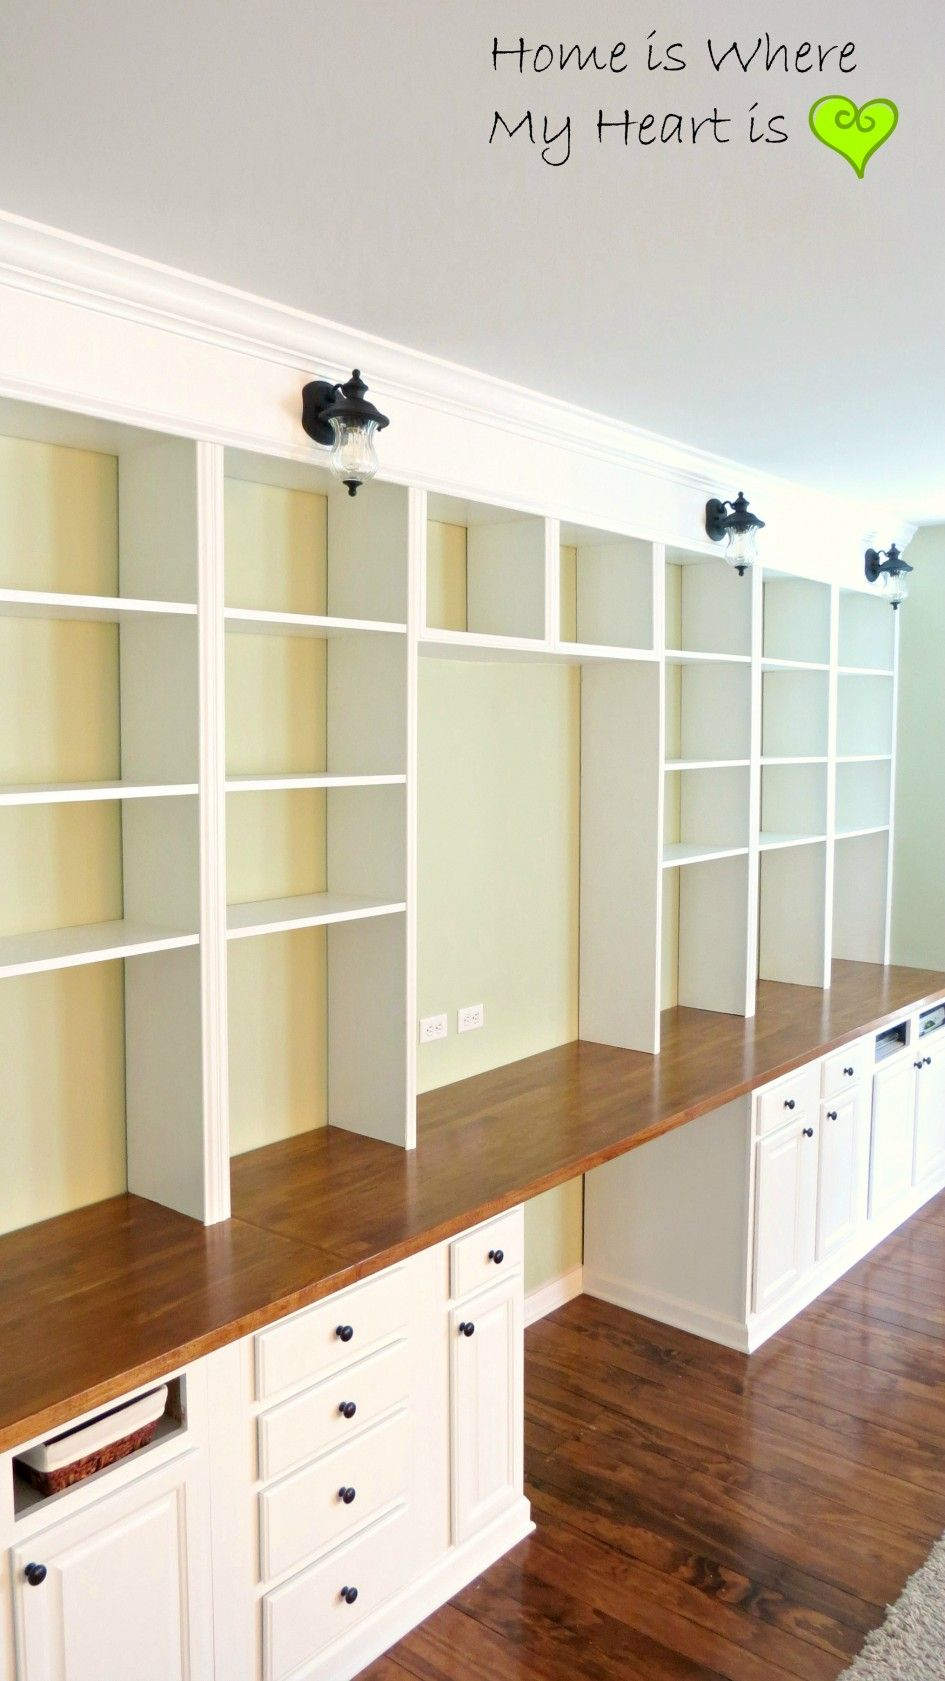 living room wall cabinets built%0A build a walltowall builtin desk and bookcase unit  Home Is Where My  Heart Is featured on Remodelaholicdesk bookcase unit for living room wall